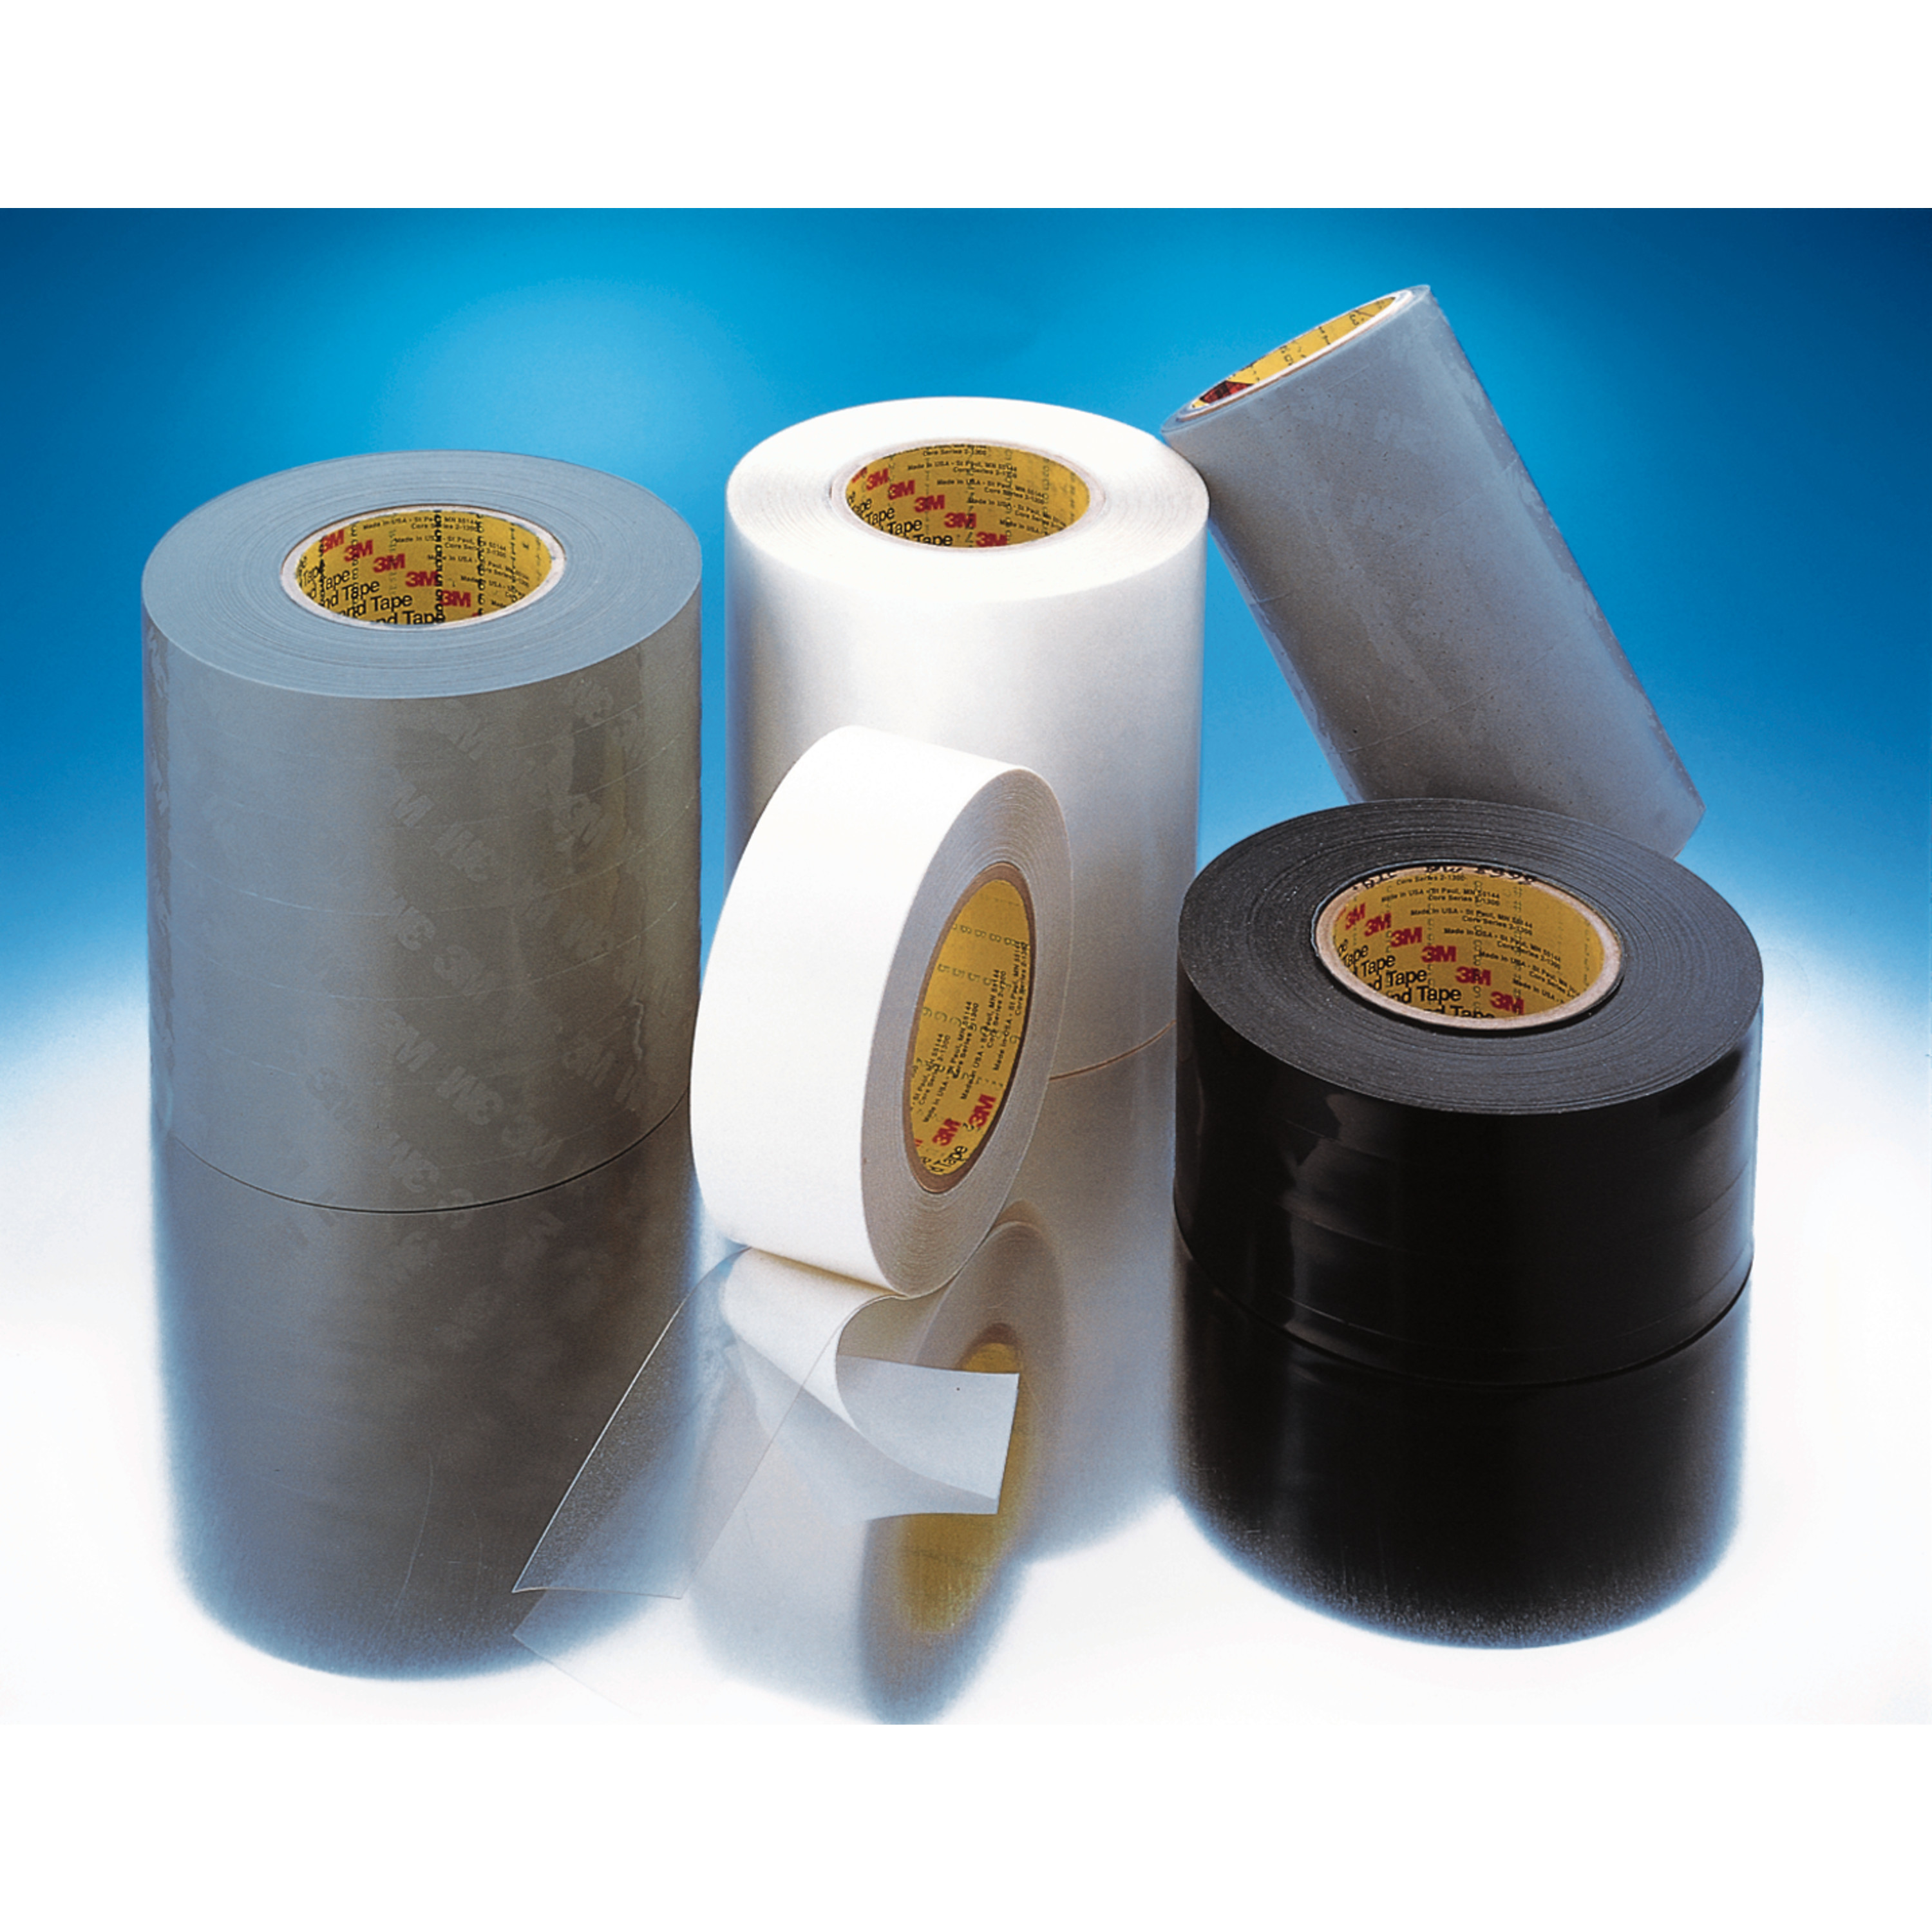 3M™ Polyurethane Protective Tape 8544, Black, PET Liner, 4 in x 3 yd, 1 Roll/Case, Sample